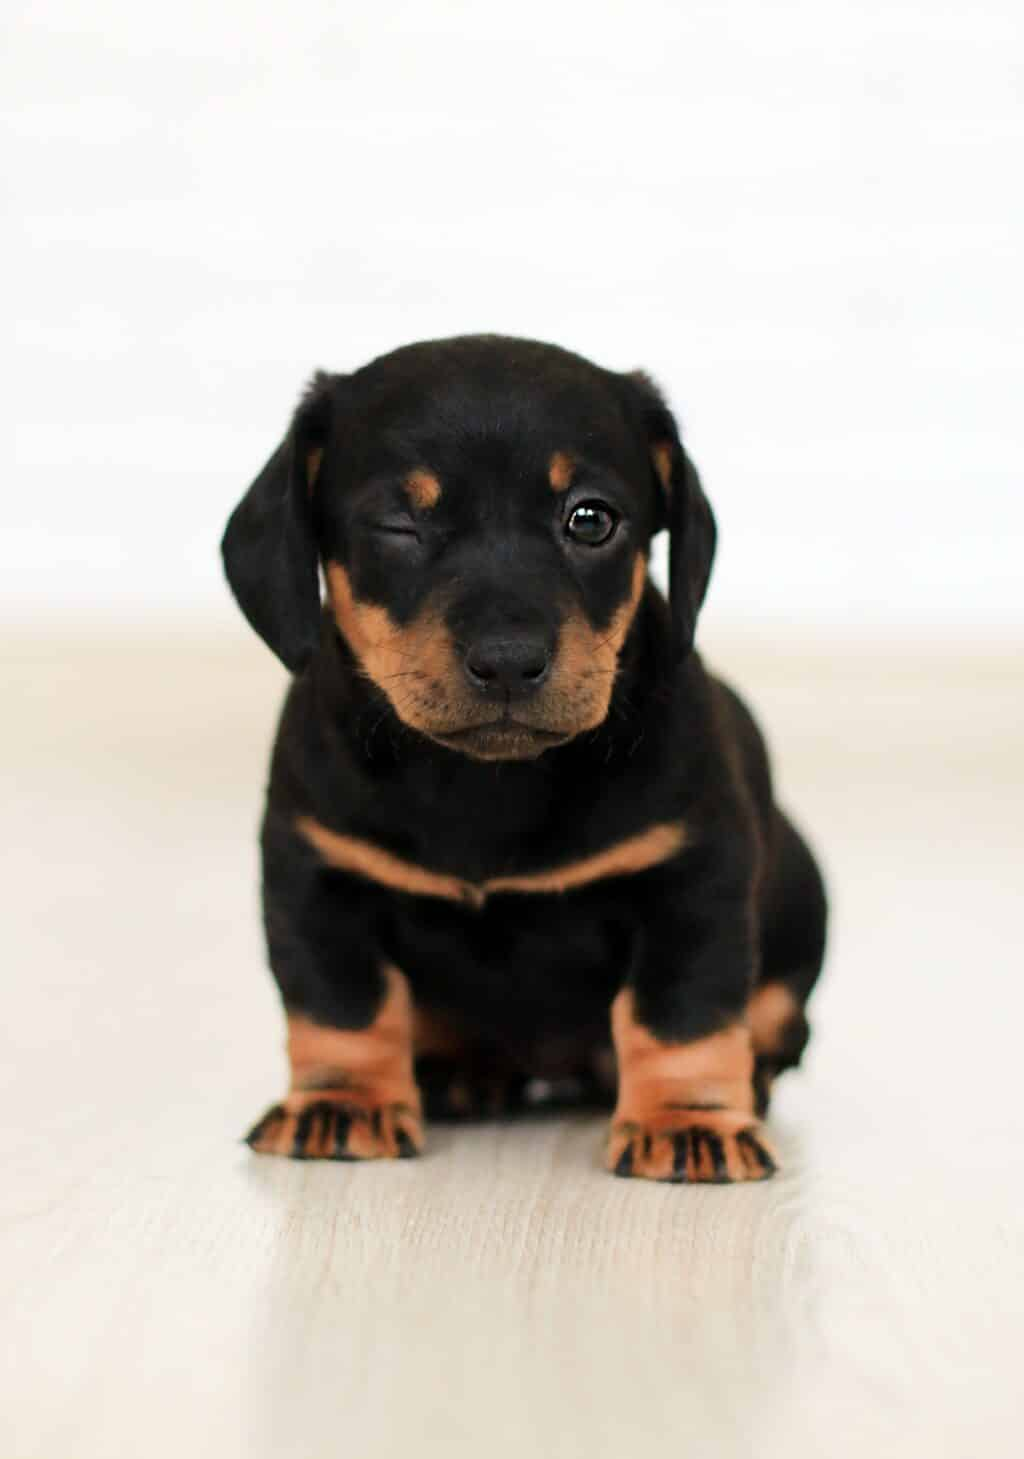 PUPPY TRAINING: WHEN TO START?